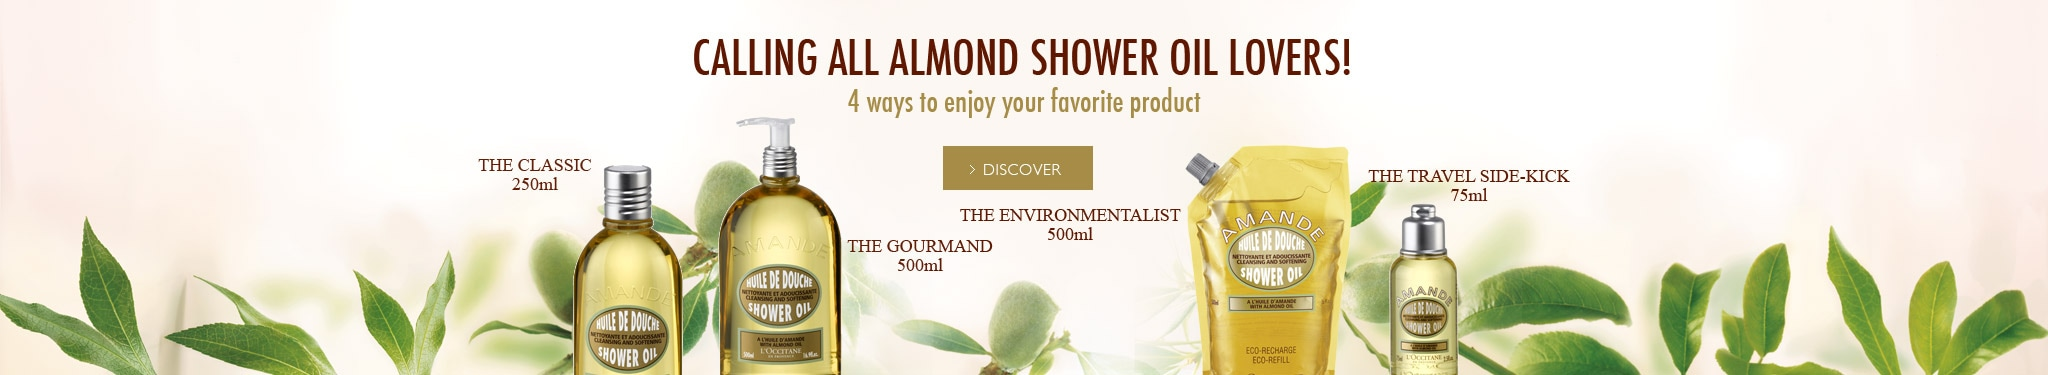 Calling All Almond Shower Oil Lovers